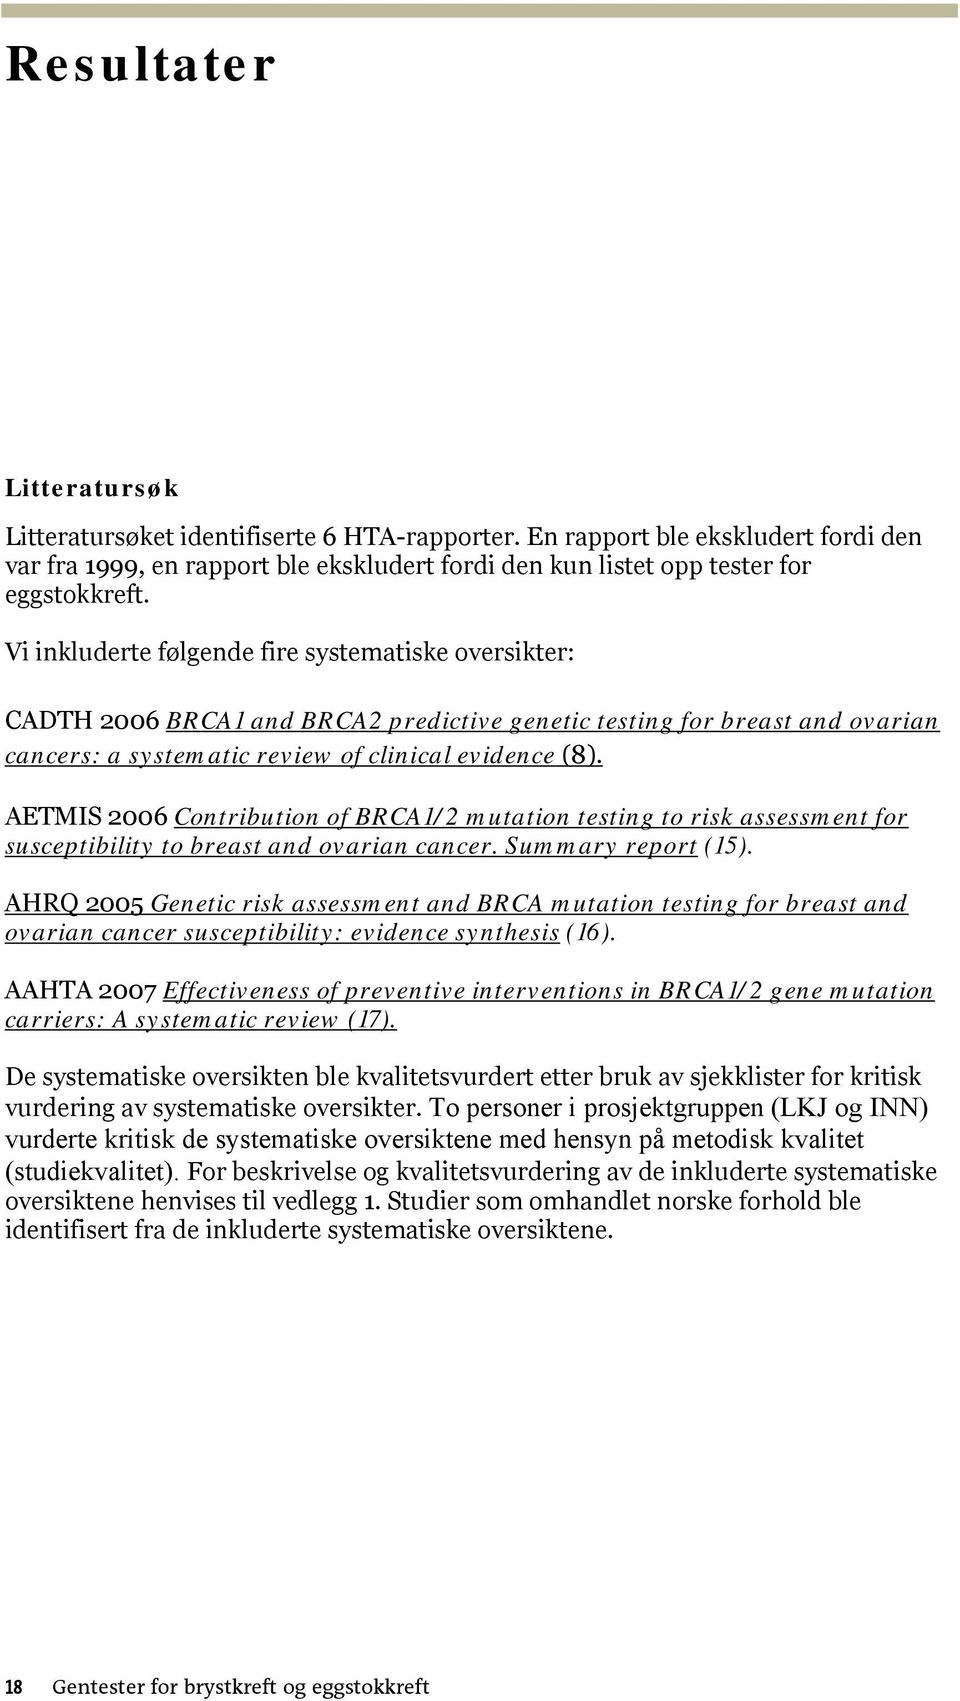 AETMIS 2006 Contribution of BRCA1/2 mutation testing to risk assessment for susceptibility to breast and ovarian cancer. Summary report (15).